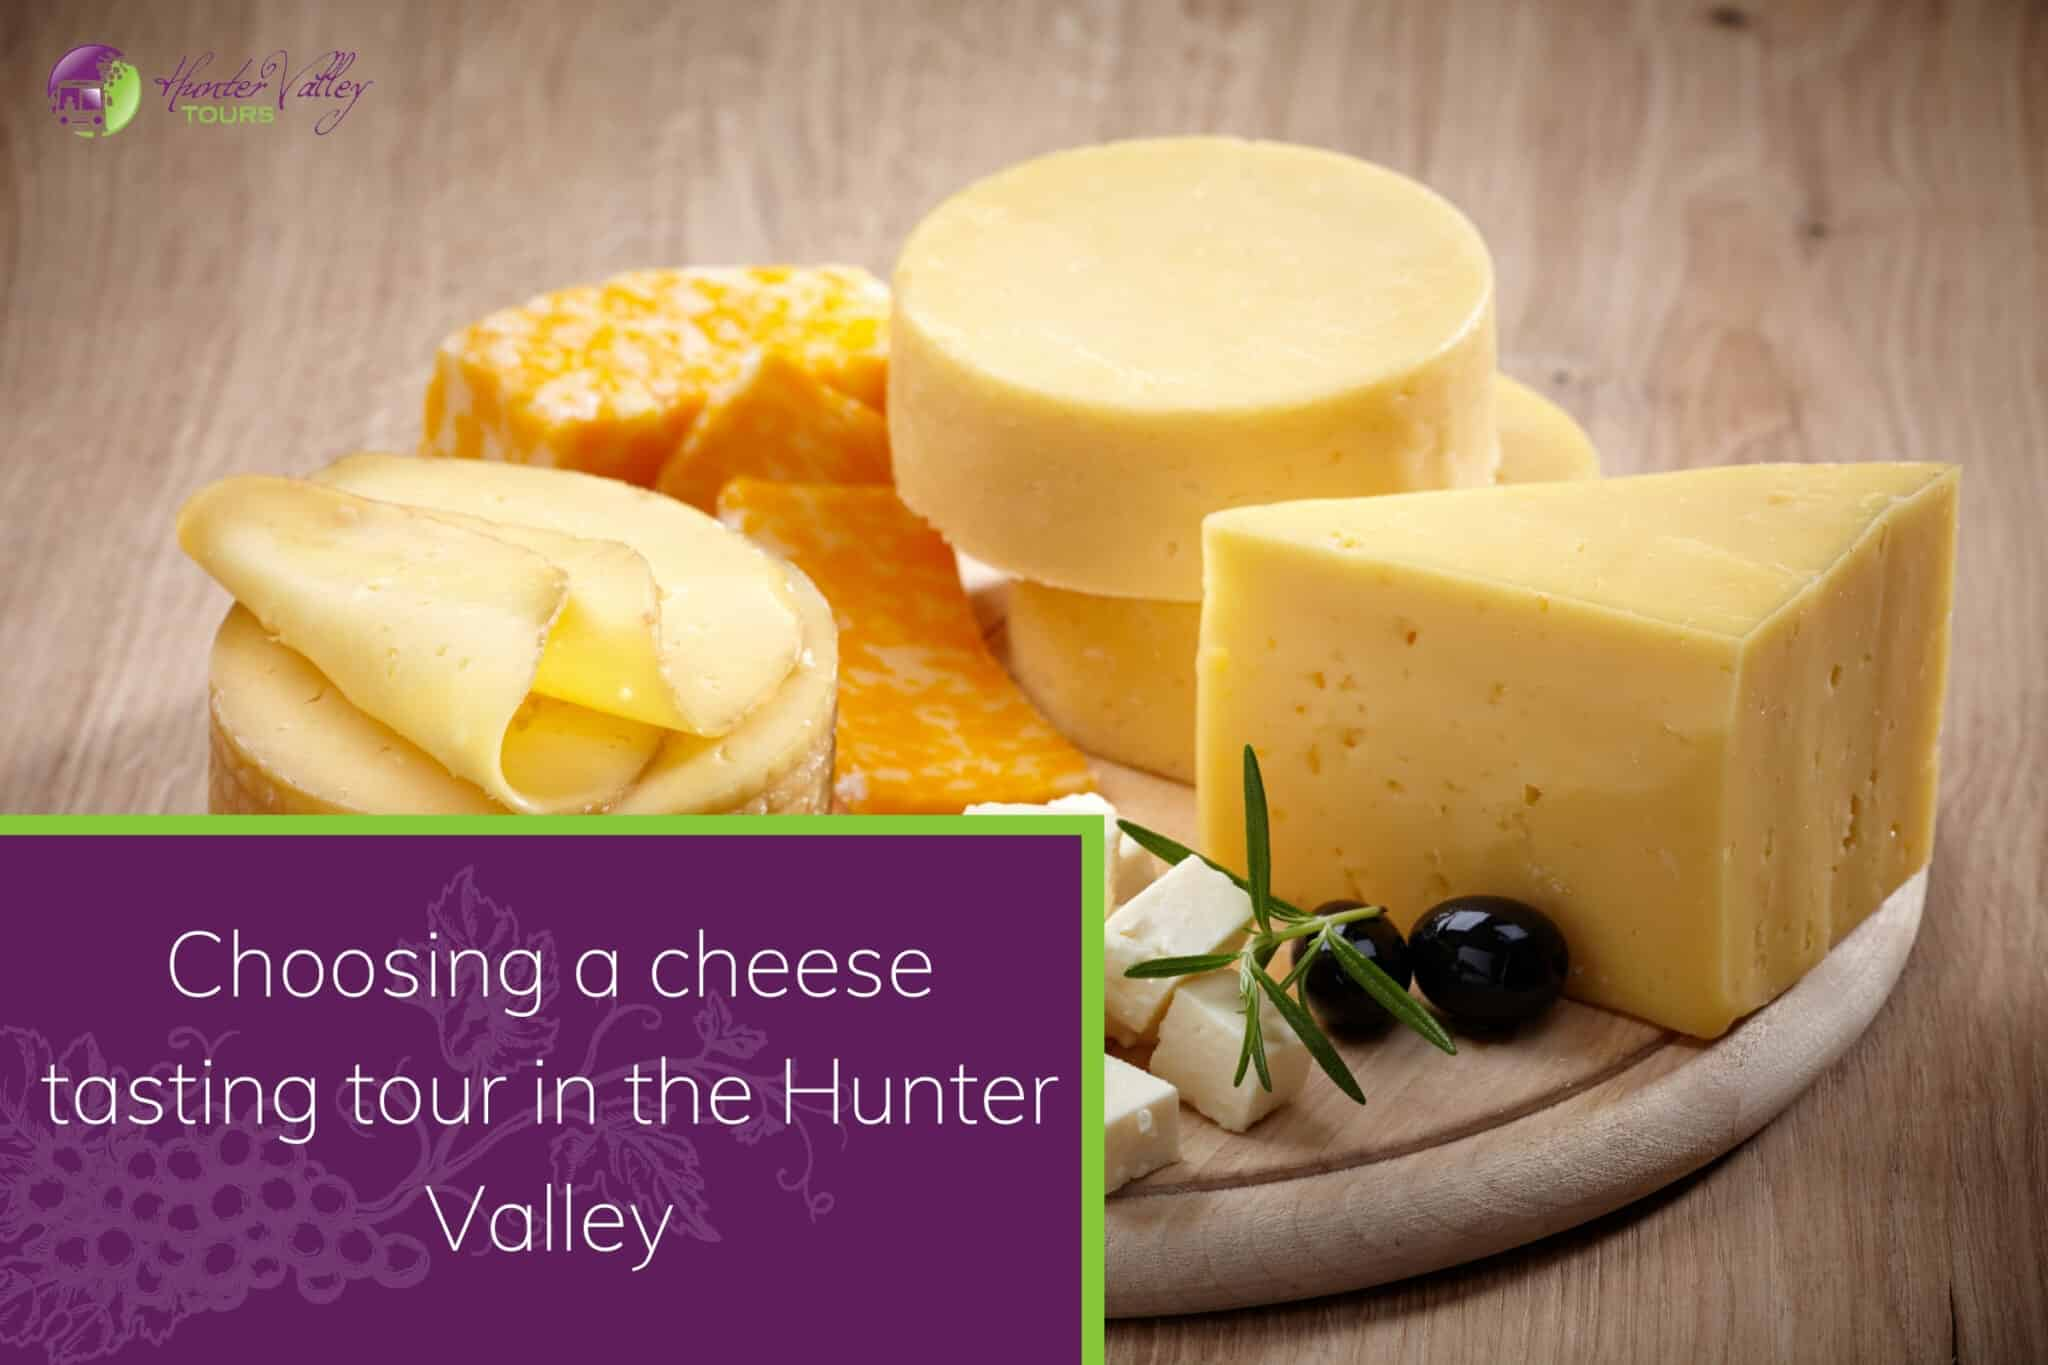 Choosing a cheese tasting tour in the Hunter Valley